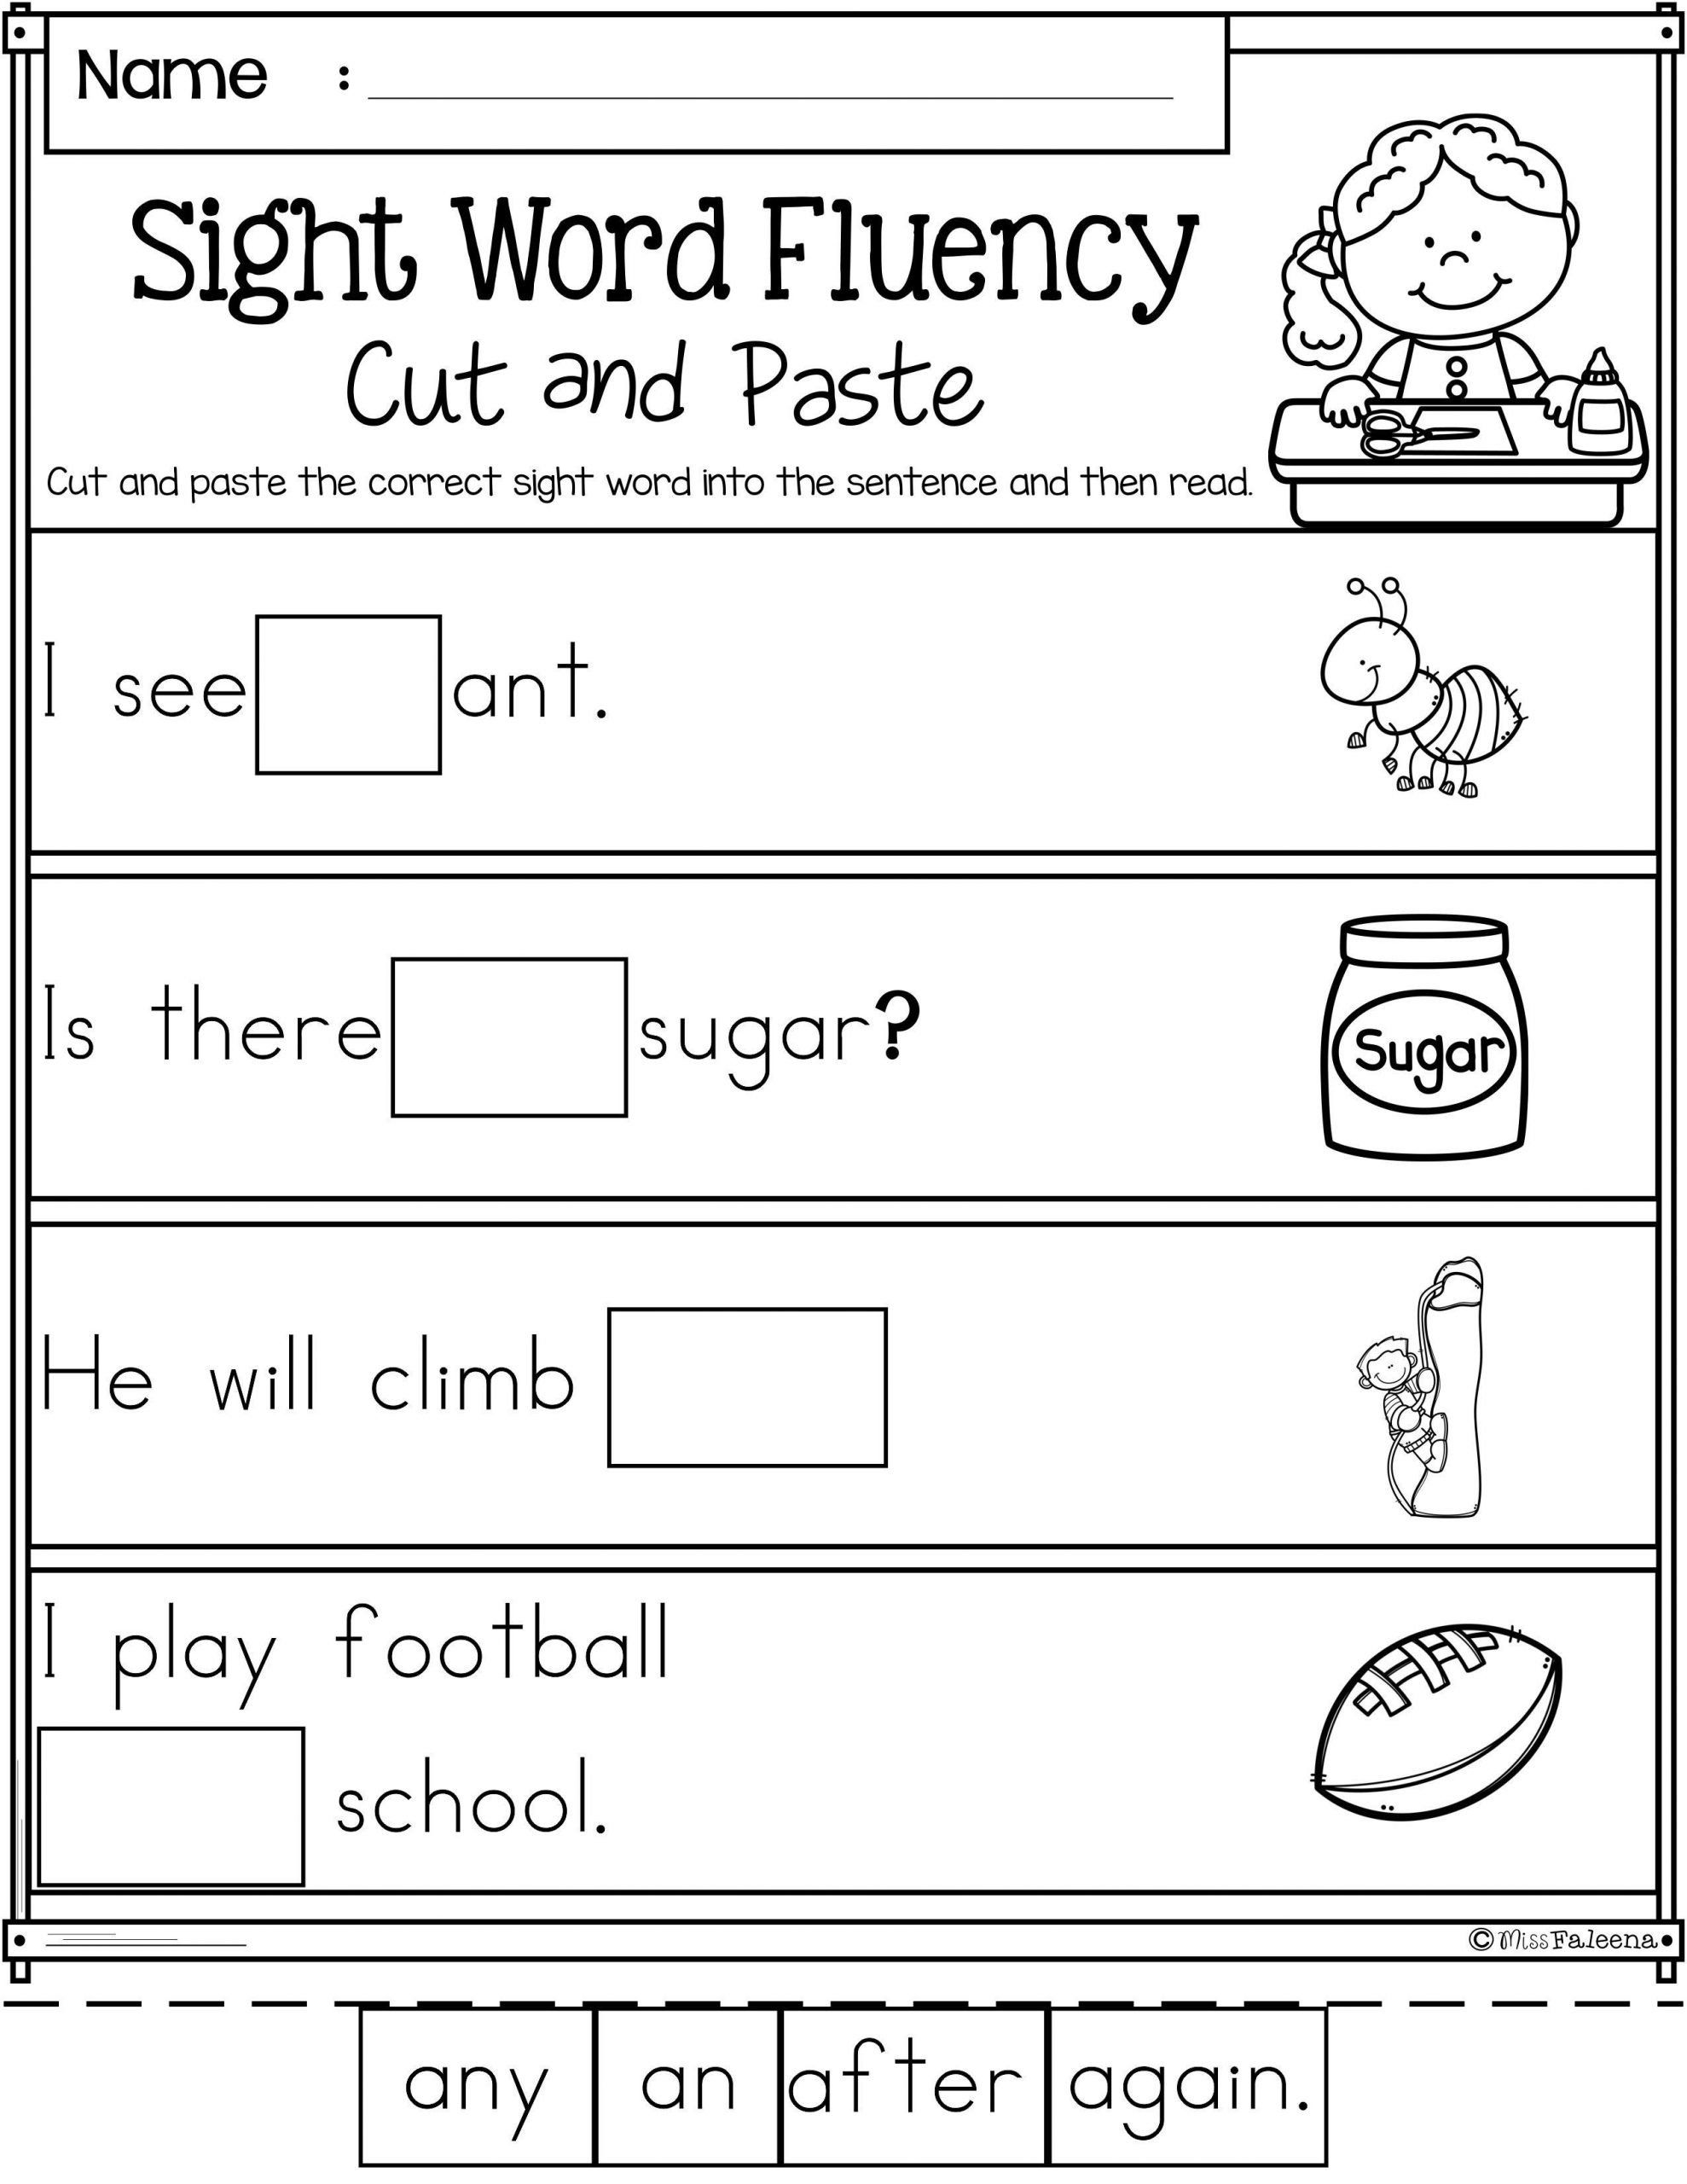 Reading Worksheets For Kids Pin On Reading Worksheets Sight Words Kindergarten Kindergarten Reading Worksheets Kindergarten Worksheets Sight Words